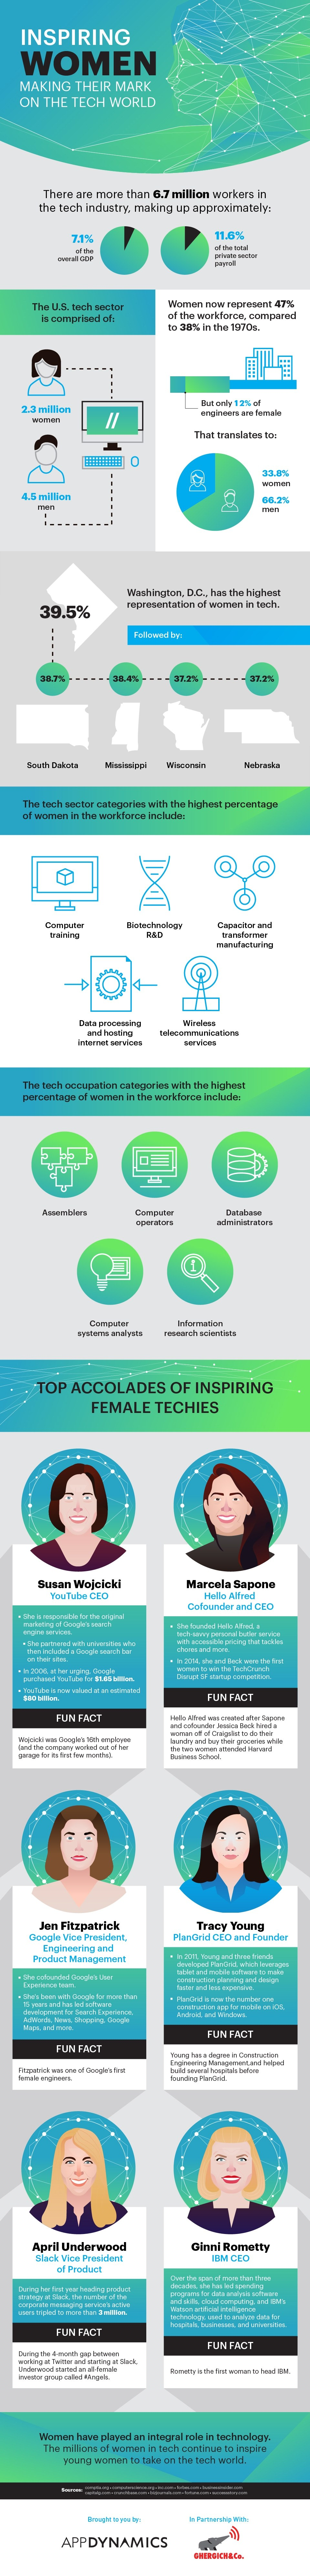 Women Who've Made Their Place In The Tech Industry - Infographic